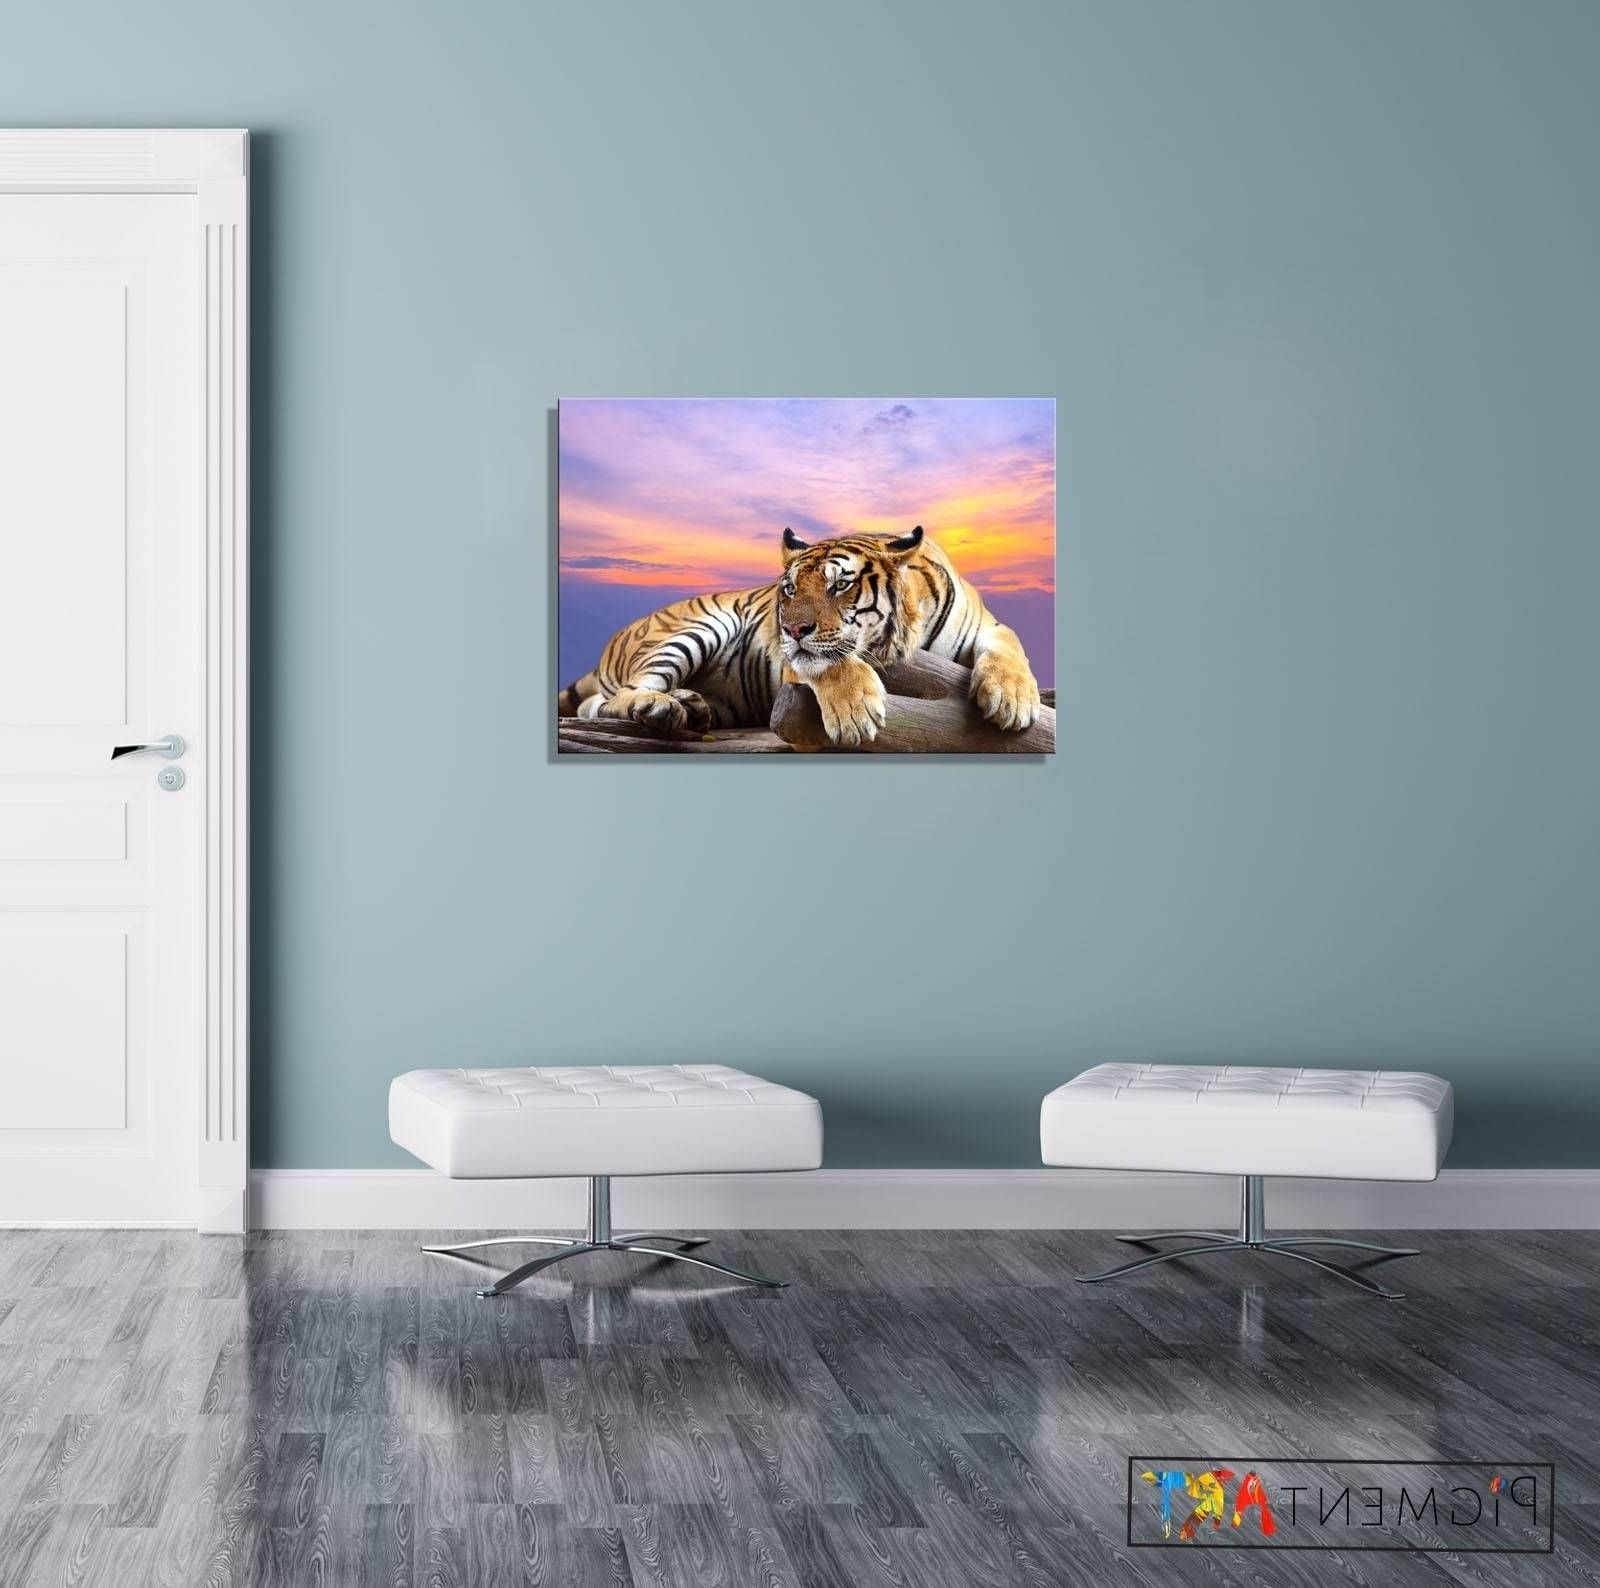 Popular Animal Canvas Wall Art In Best Photos Of Animal Canvas Wall Art Showing Trends And Styles (View 15 of 15)